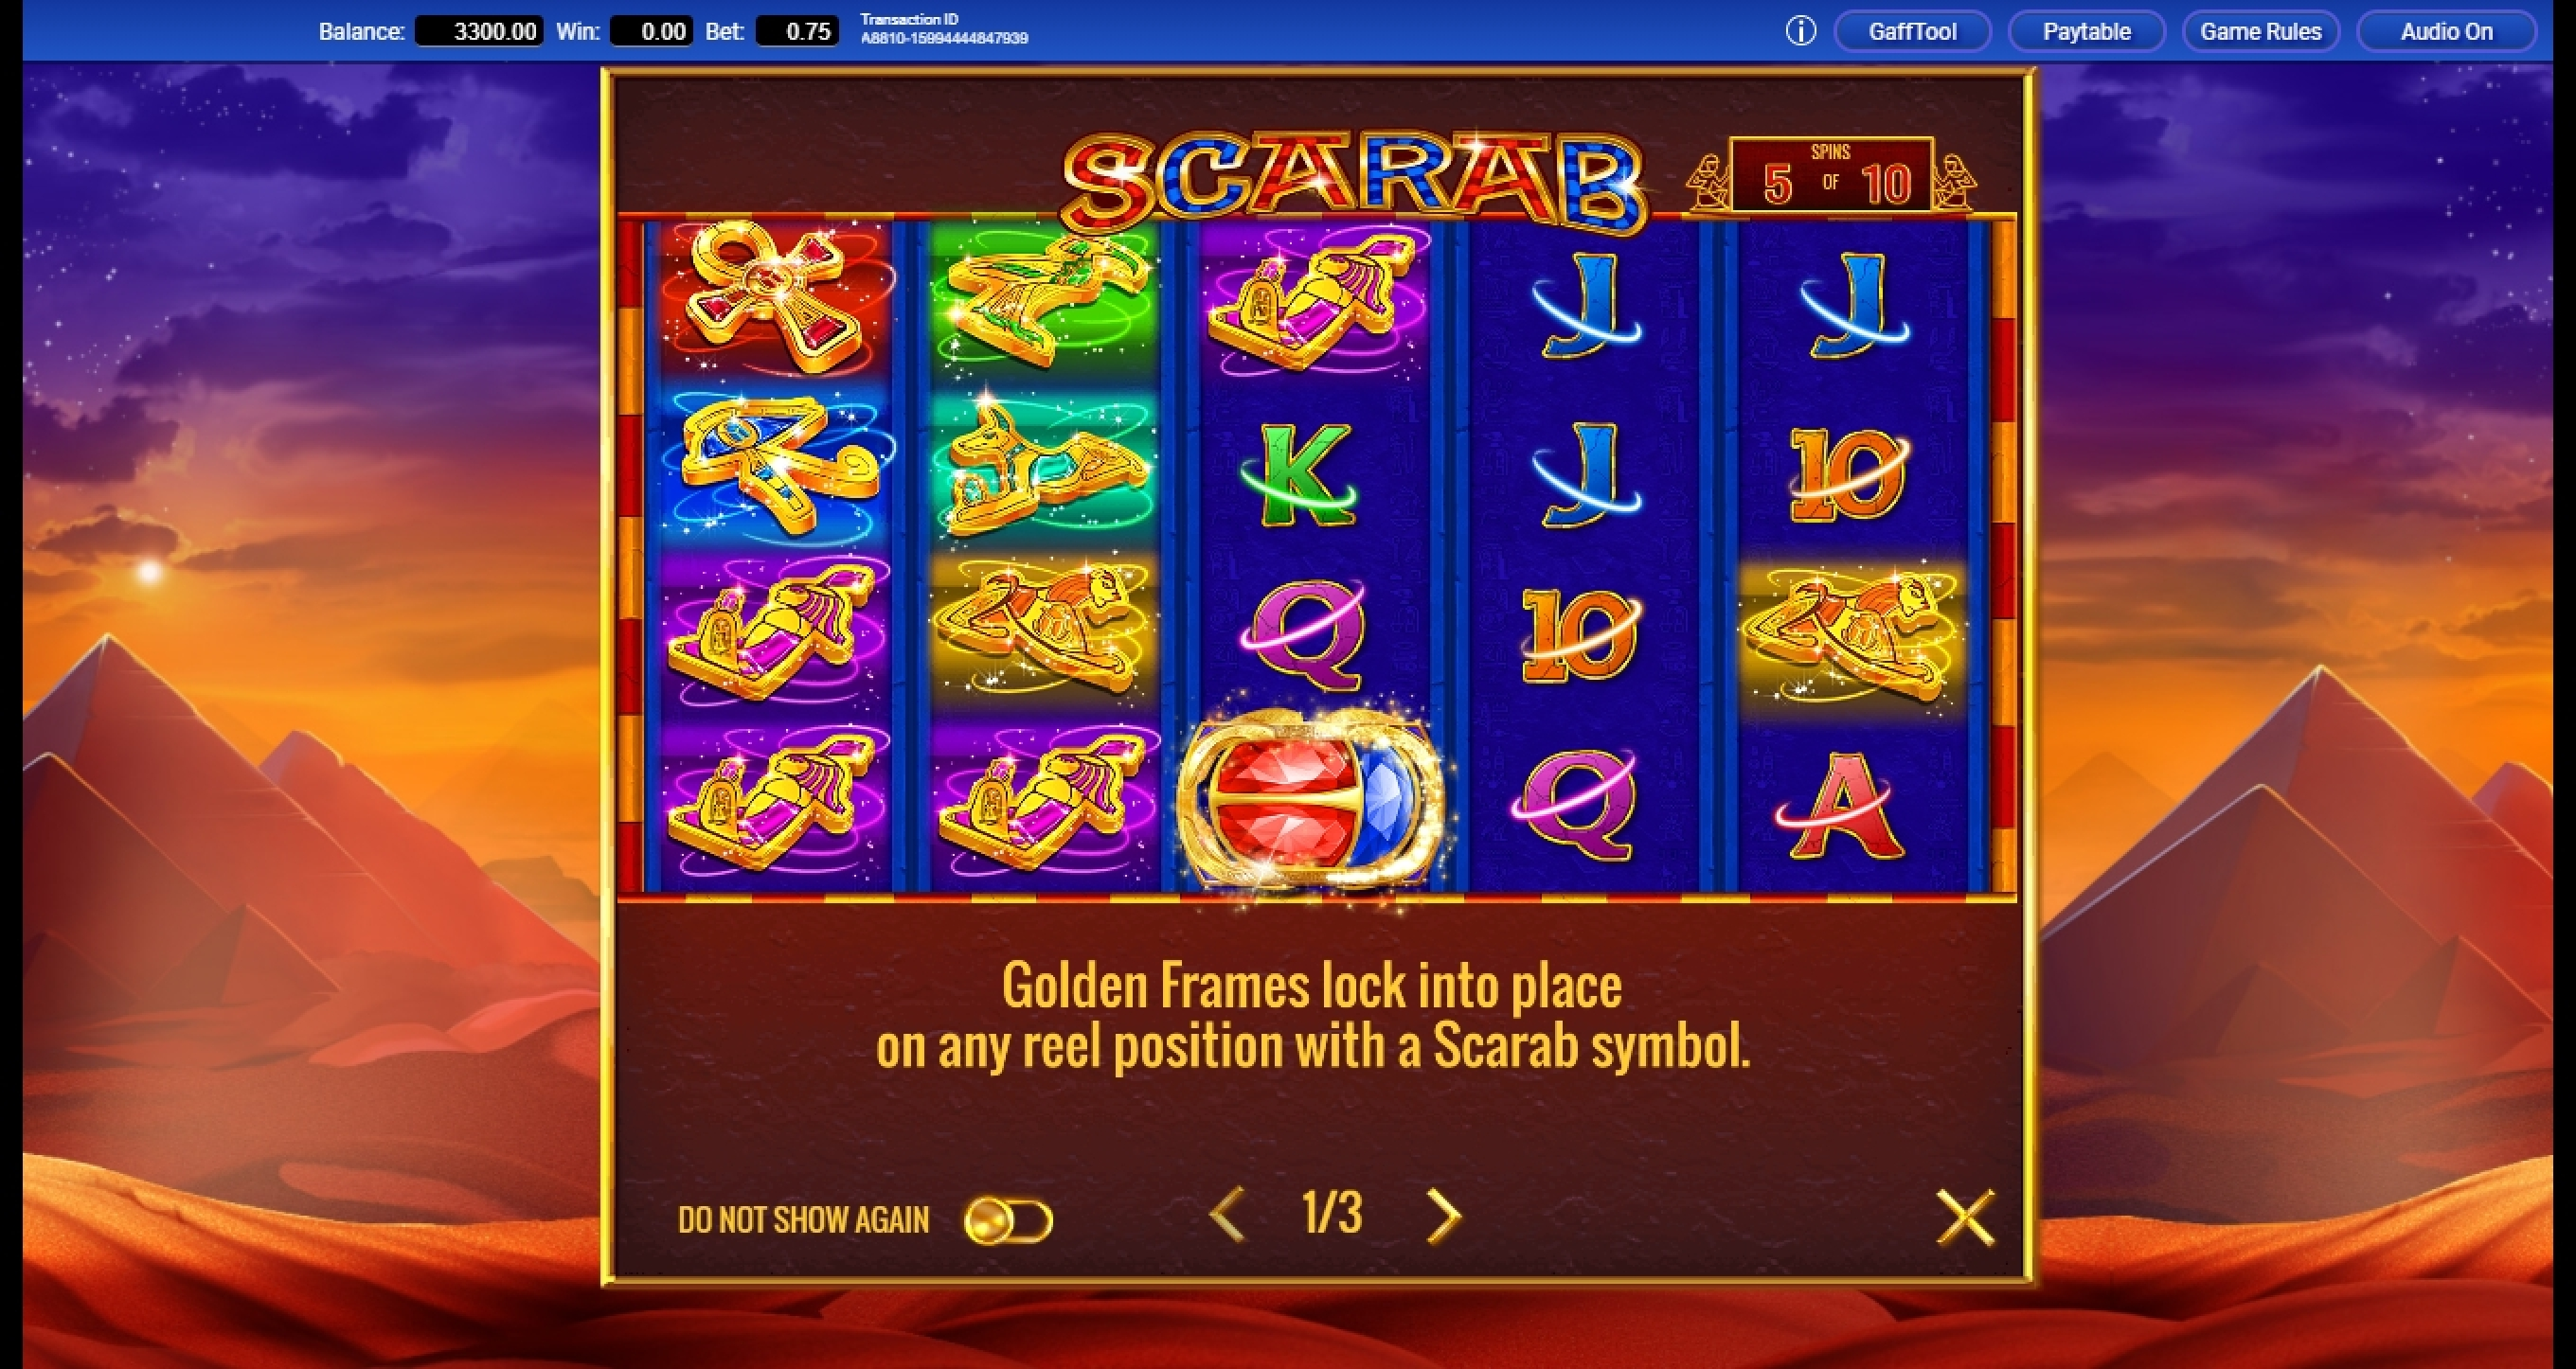 Play Scarab Free Casino Slot Game by IGT